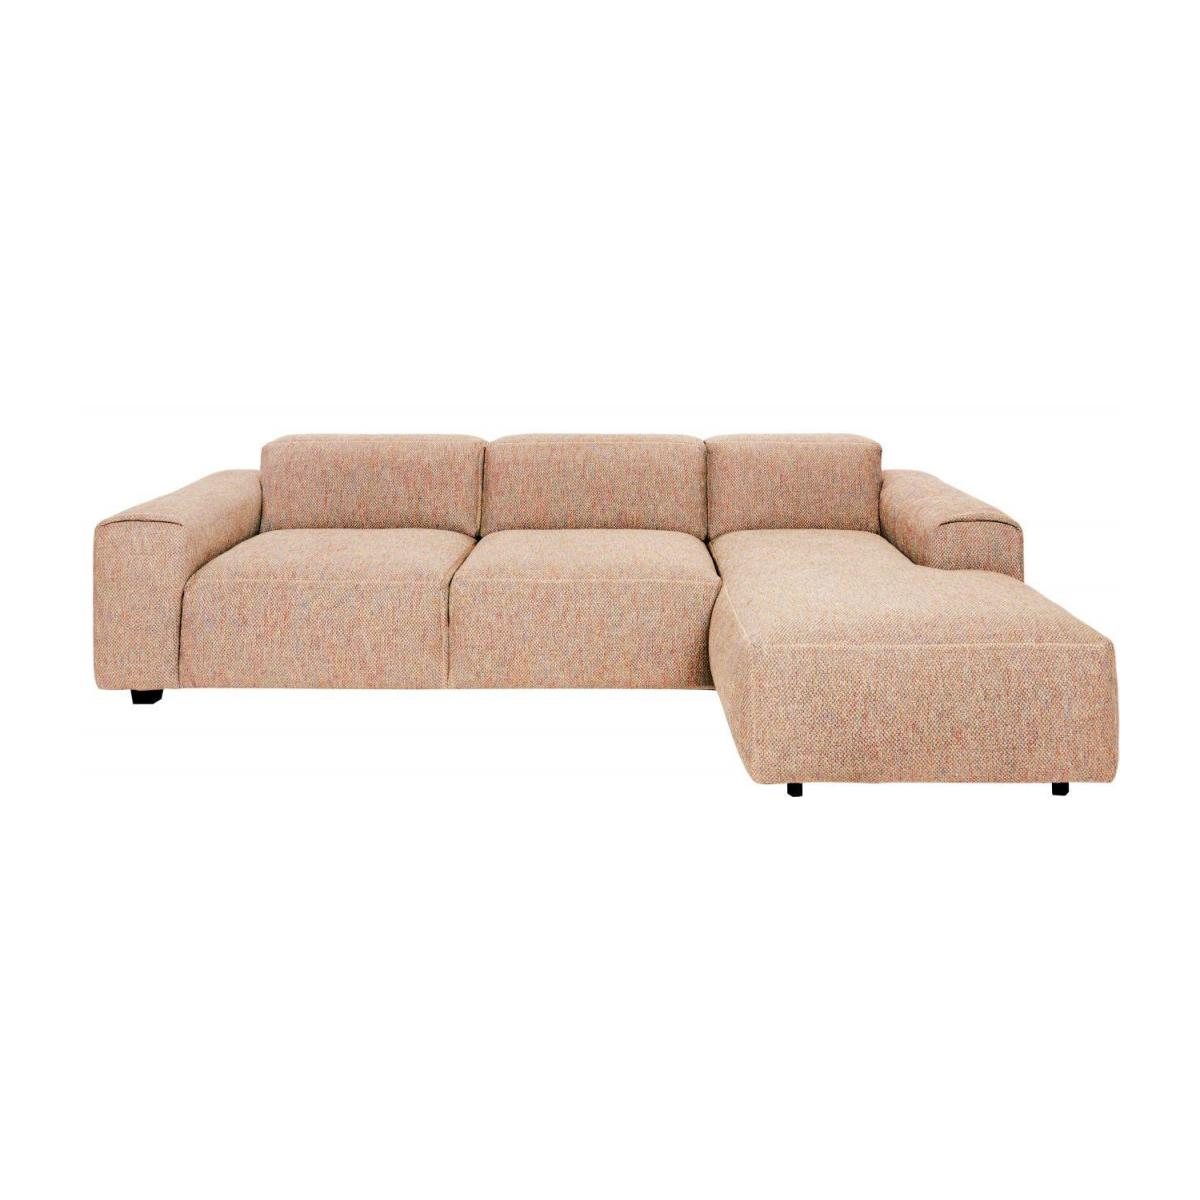 3 seater sofa with right chaise longue in Bellagio fabric, passion orange n°1